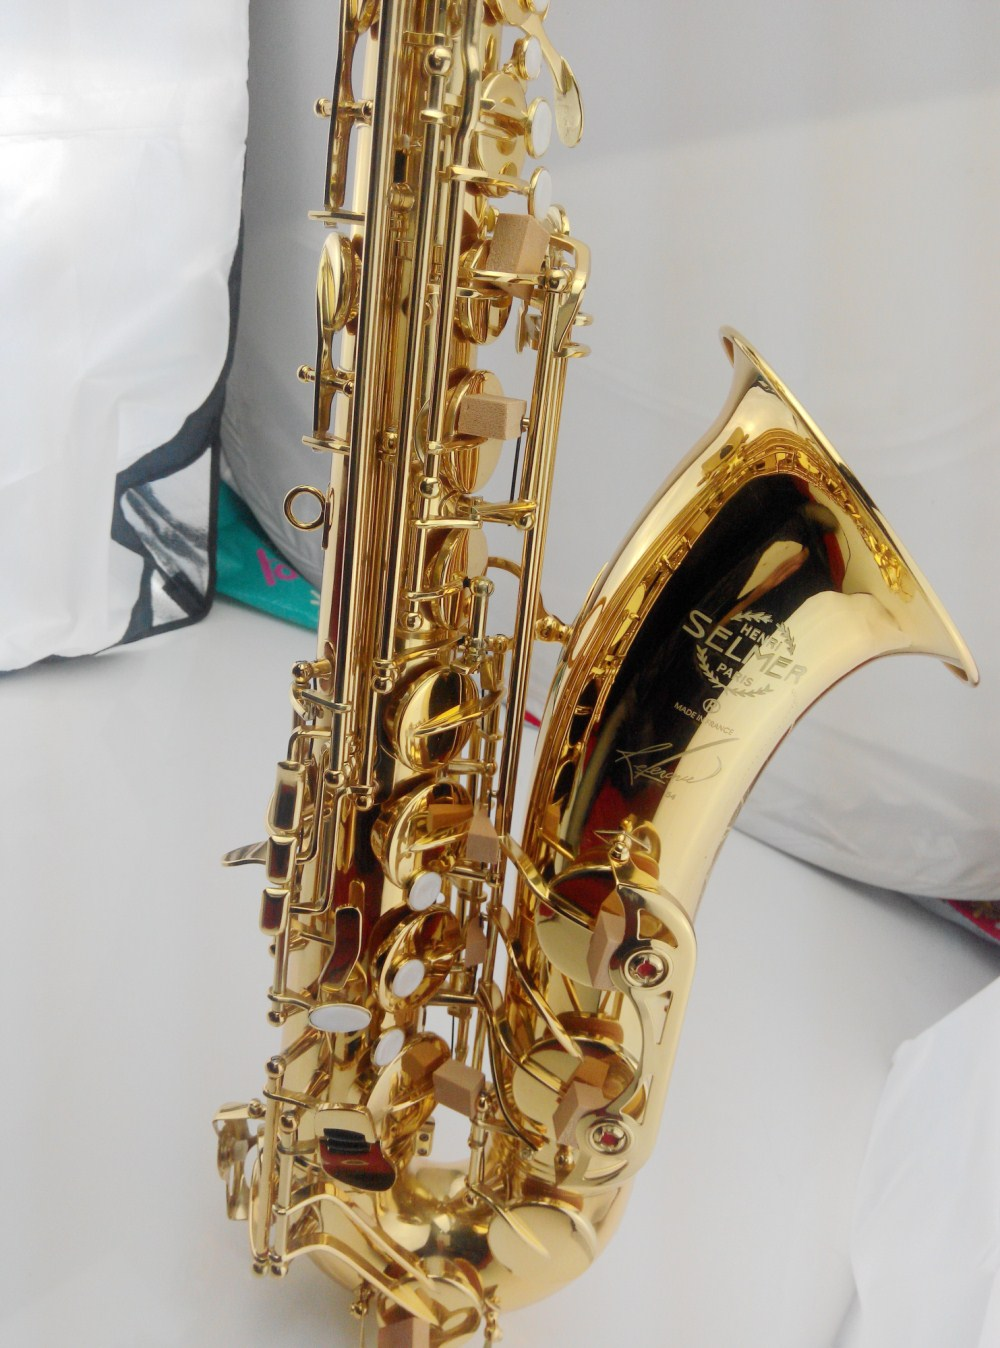 Hot France Selmer 54 B flat Sax Tenor saxophone high-grade gold Tenor music quality assurance free shipping france henri selmer bb tenor saxophone instruments reference 36 drop b saxophone surface gold lacquer pink body professional sax